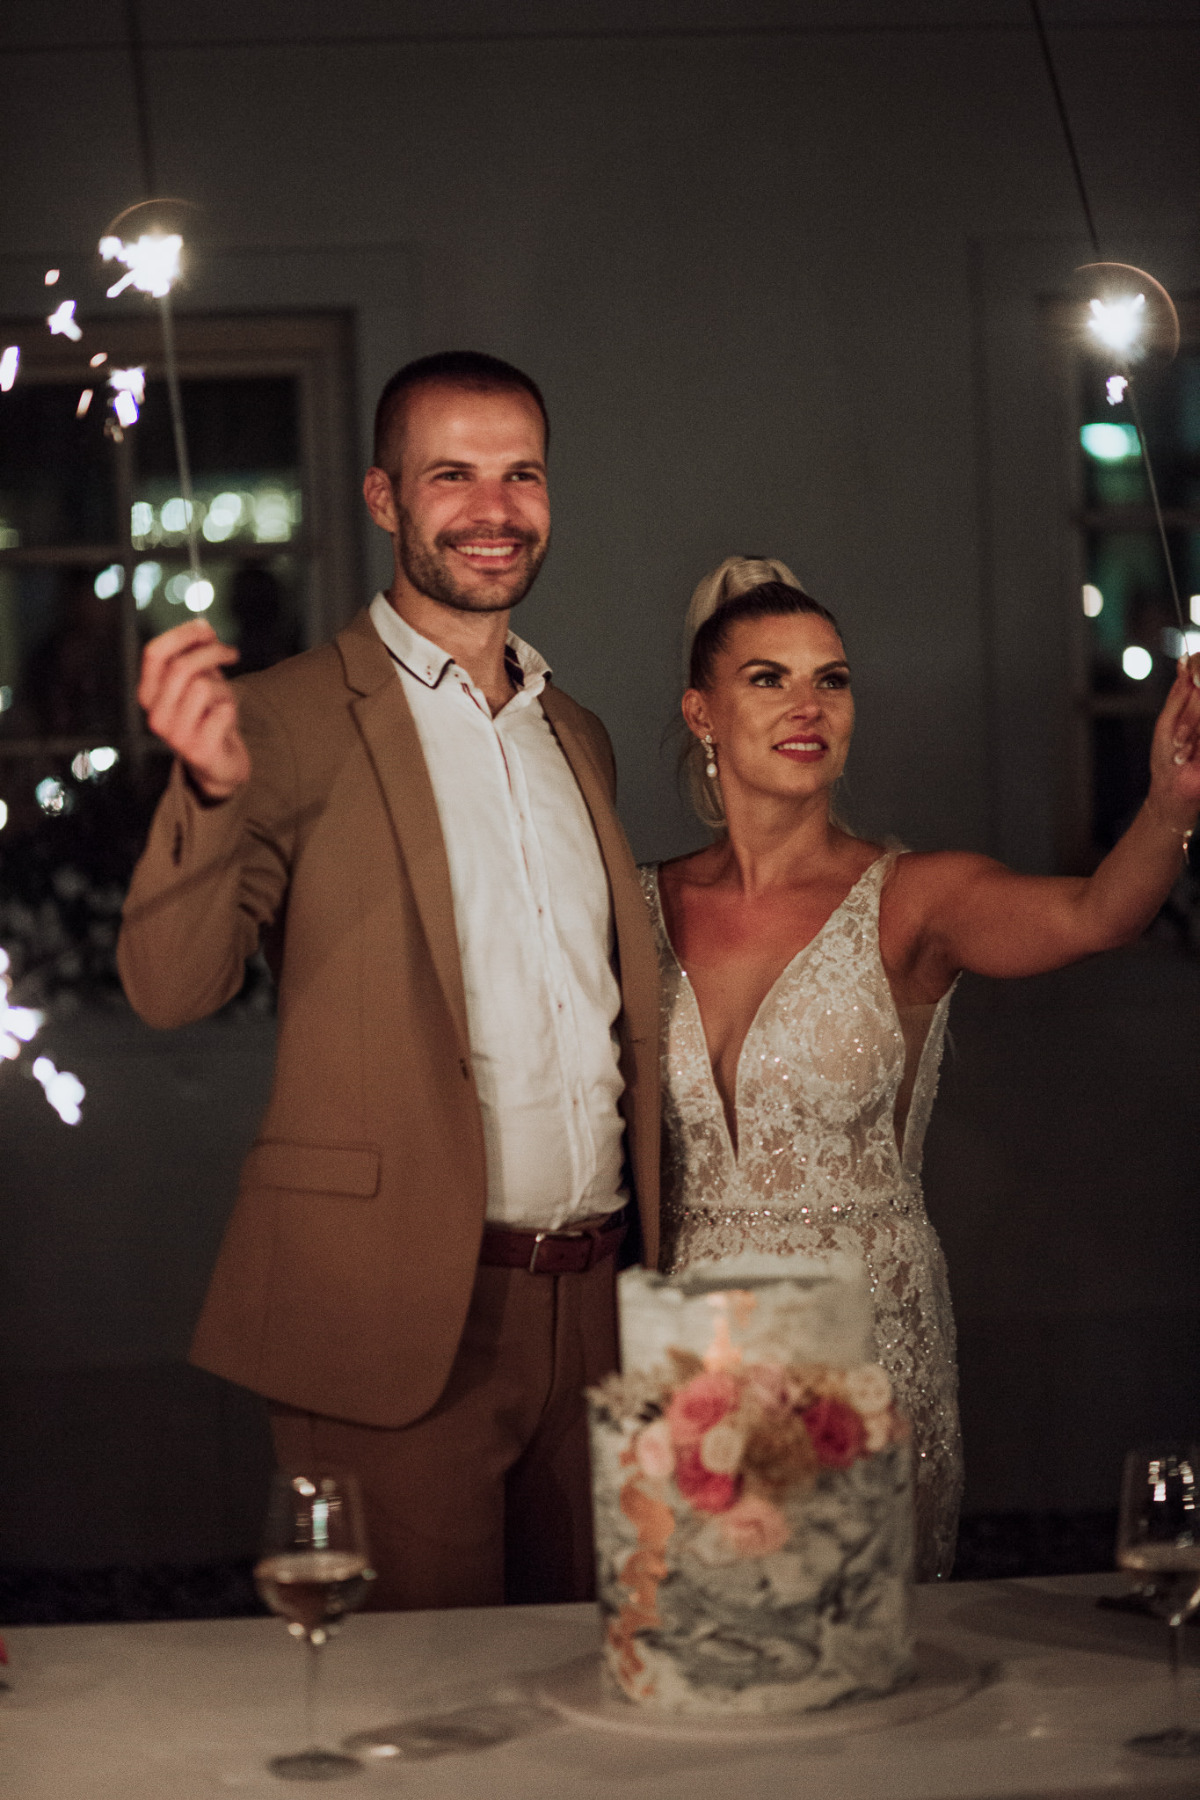 sparkler wedding toast